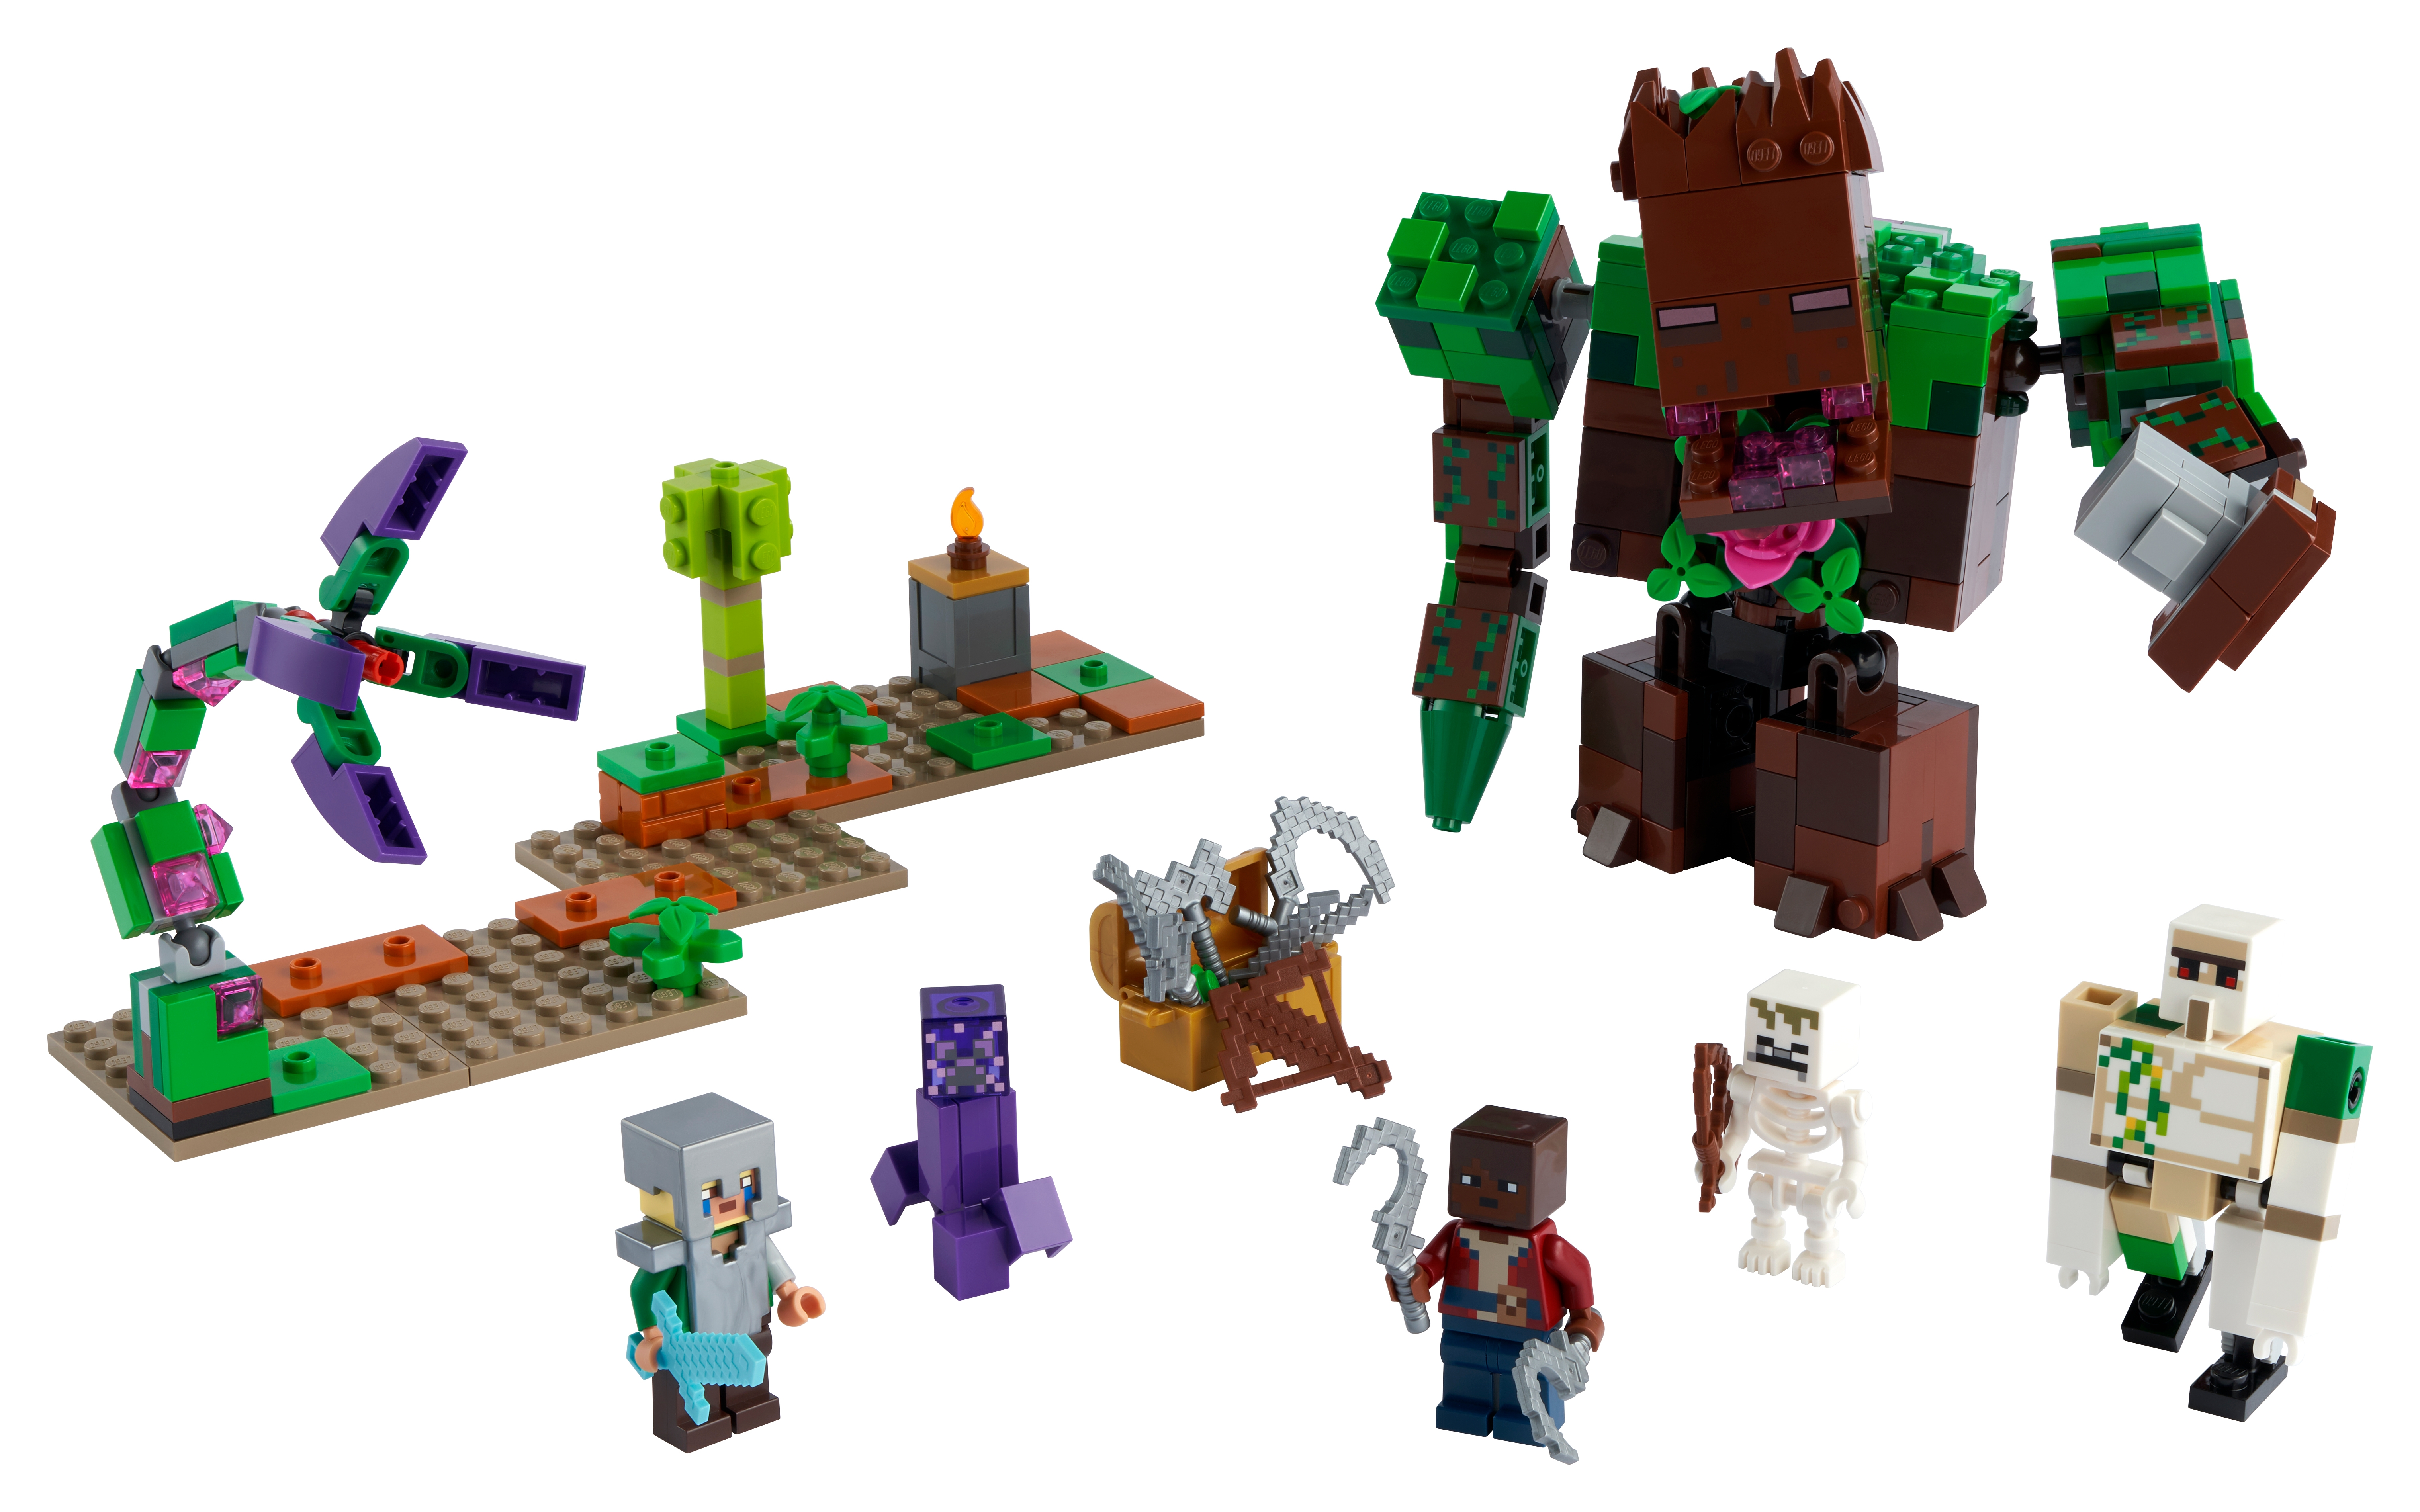 The Jungle Abomination 21176 Minecraft™ Buy online at the